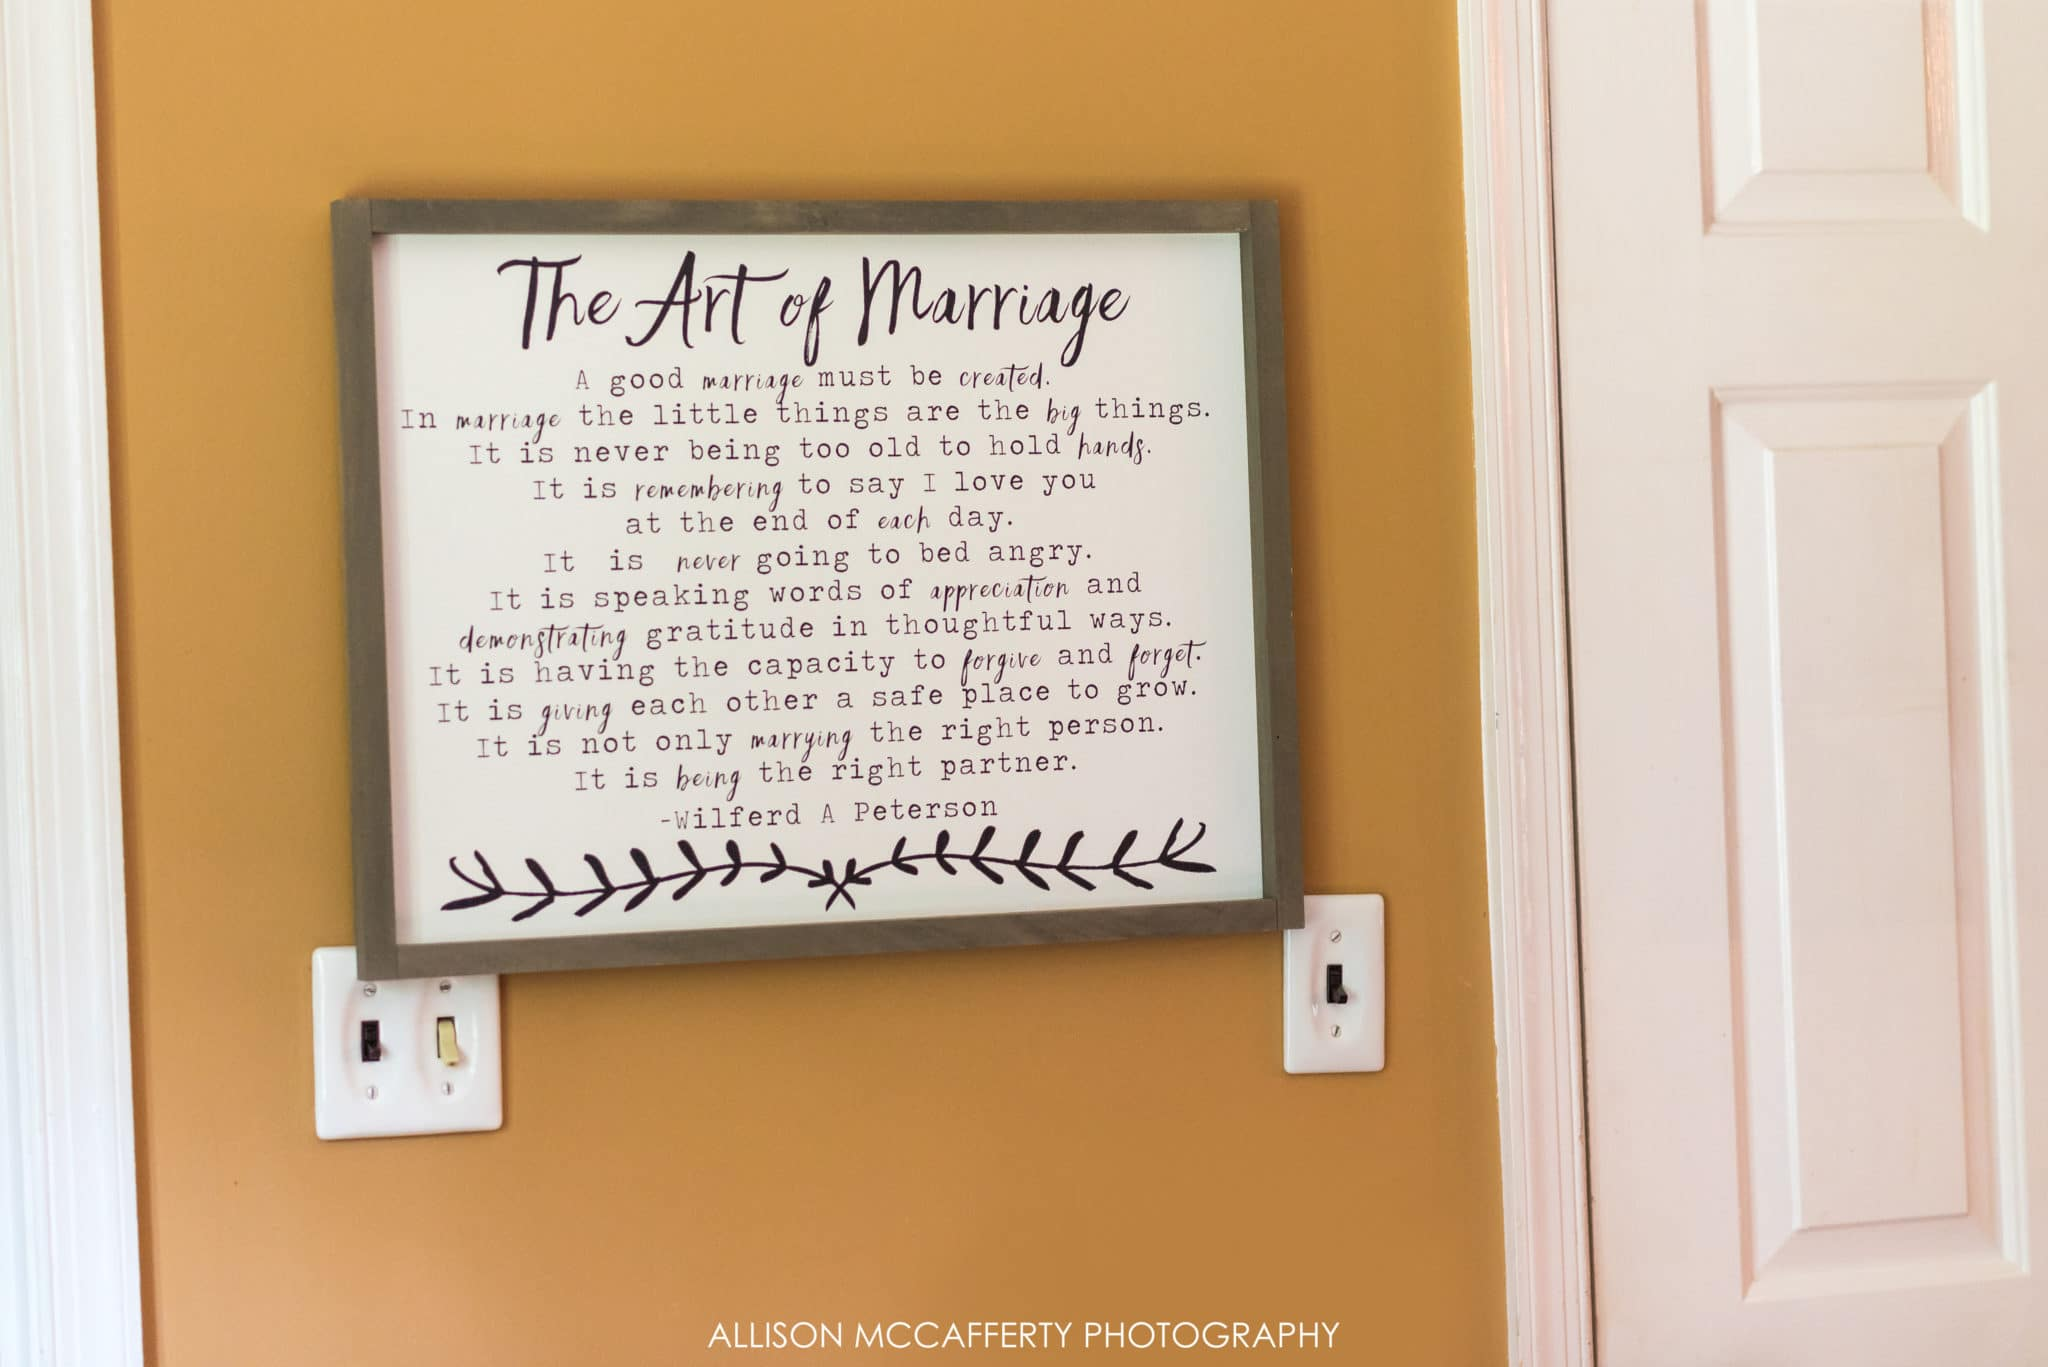 The Art of marriage artwork